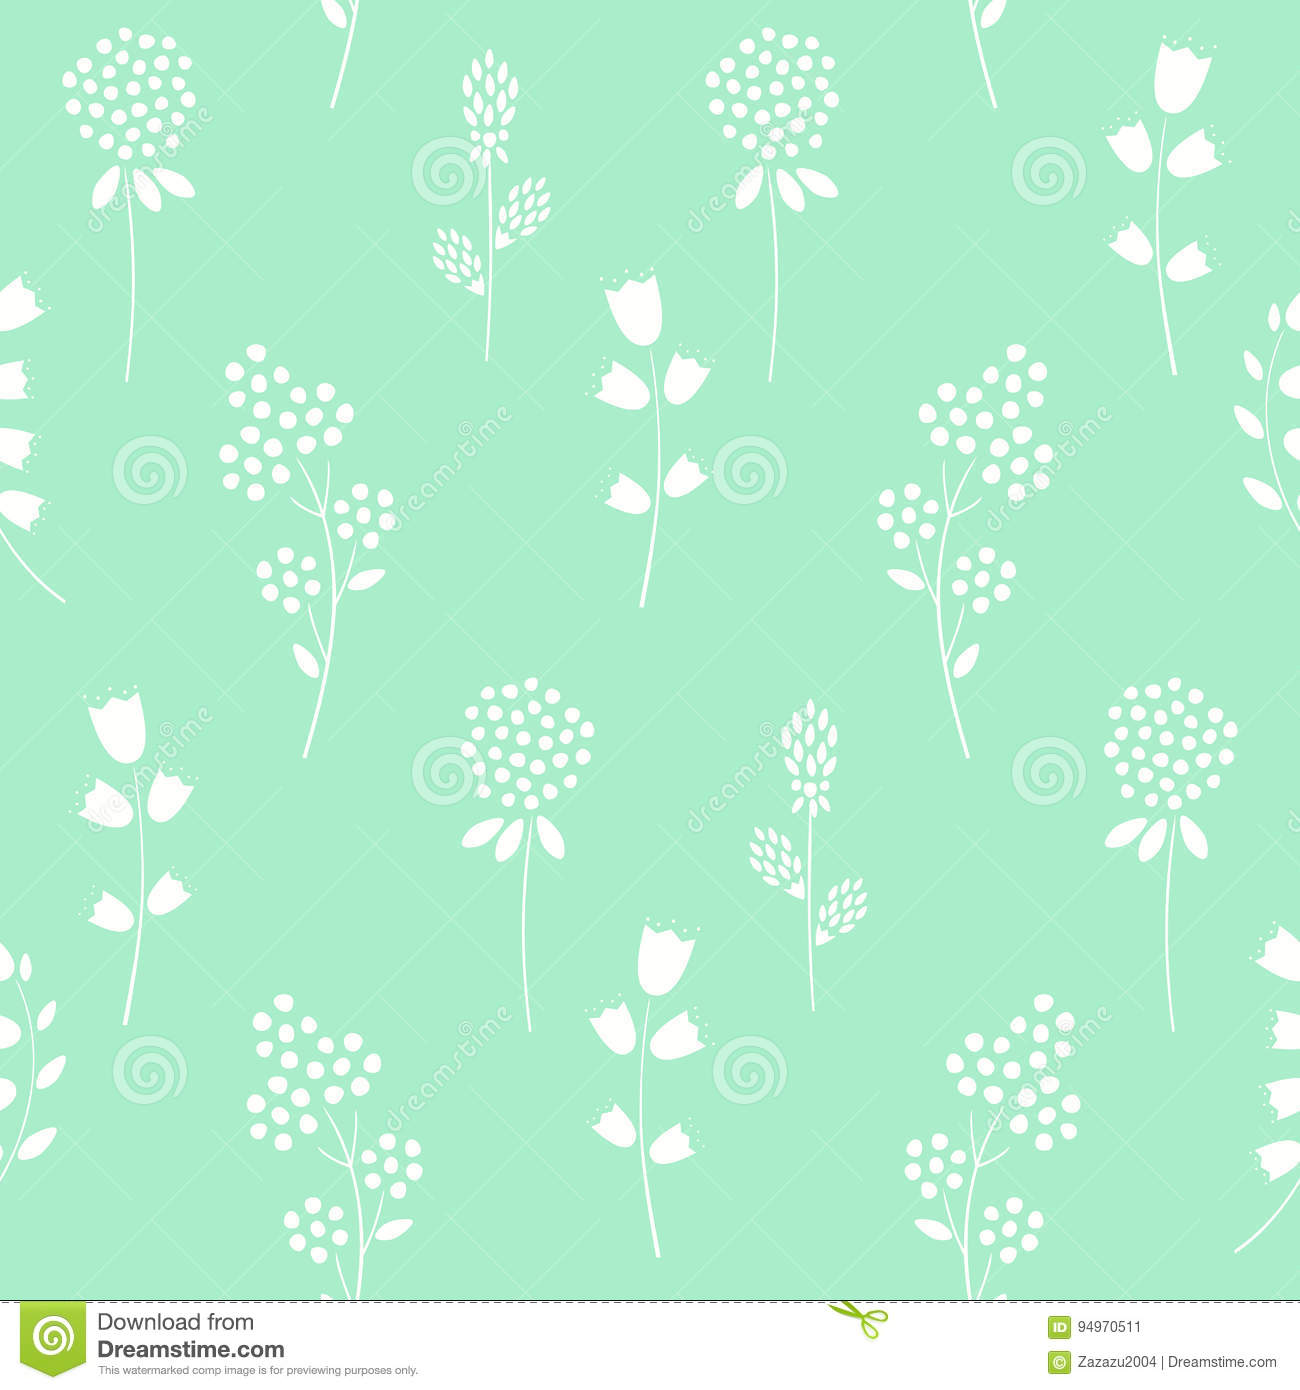 floral pattern on mint green background stock vector